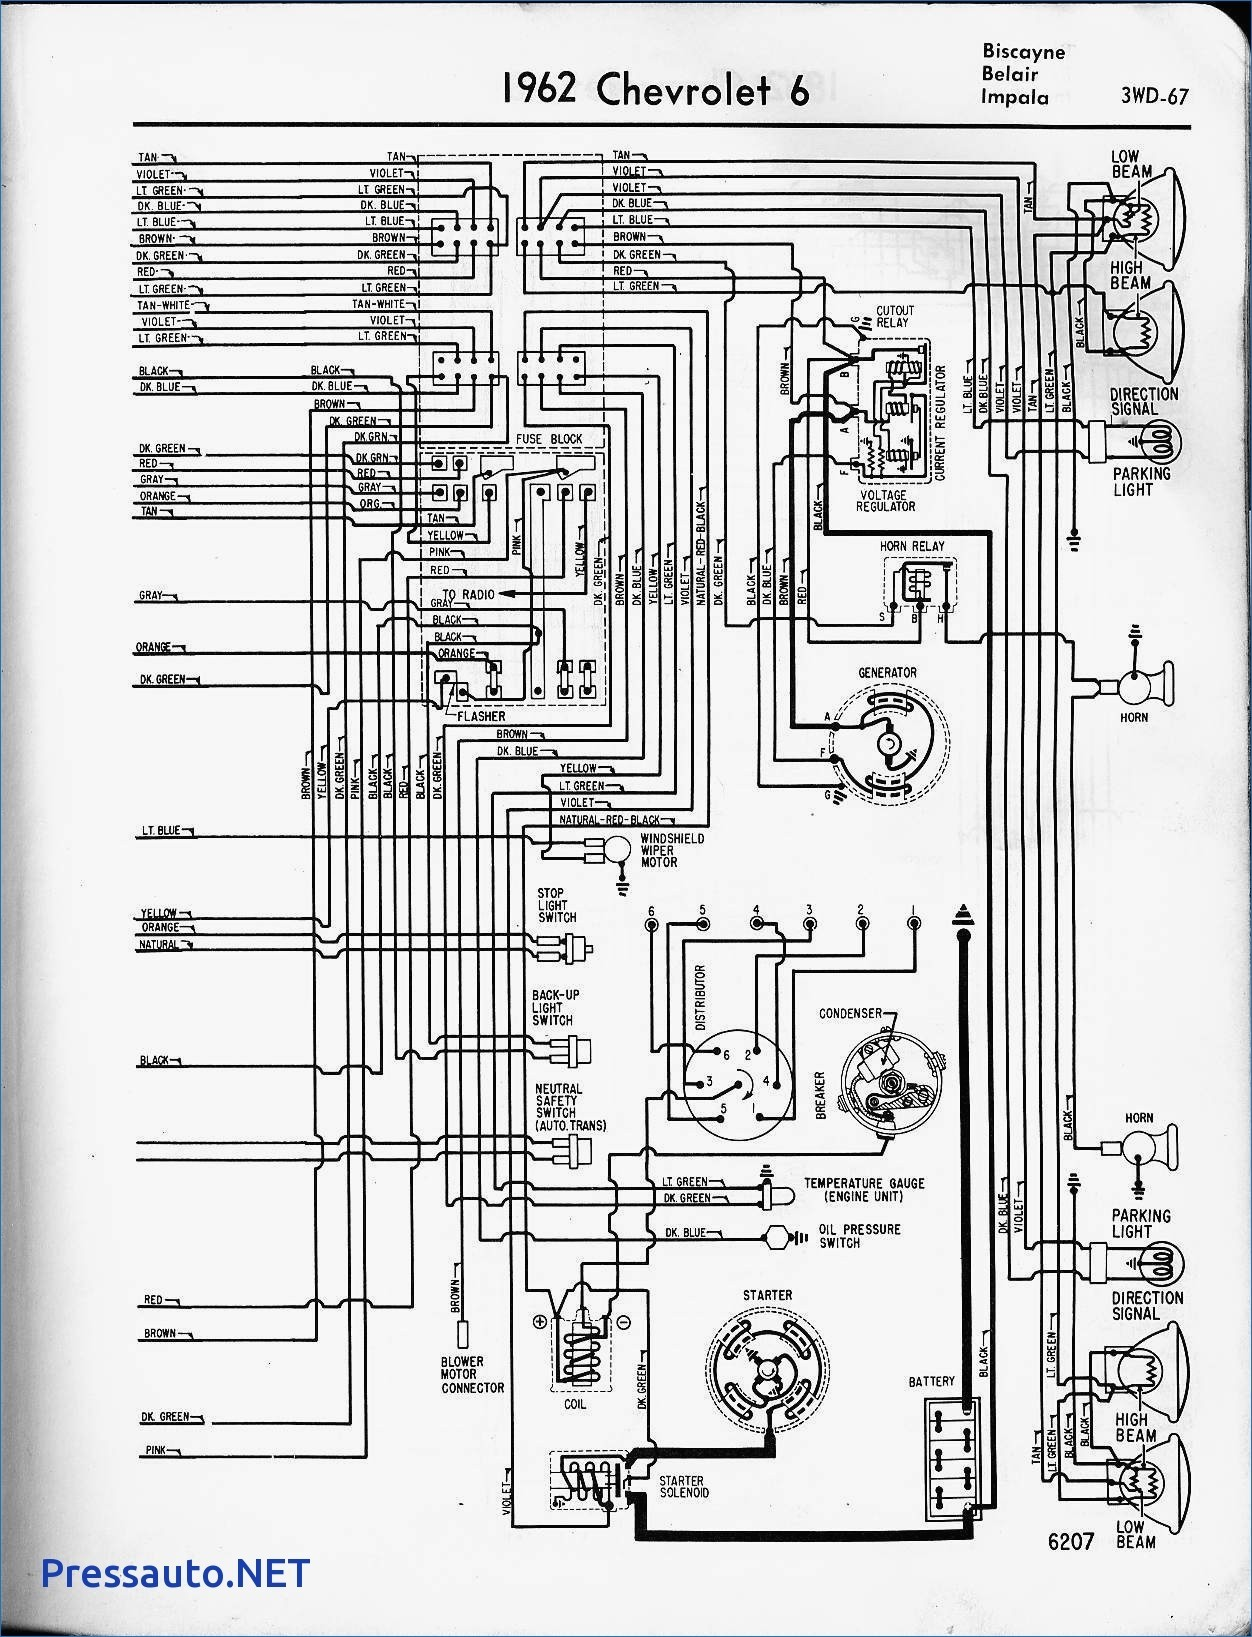 Wiring Diagram For 1967 Chevy Impala - Data Wiring Diagram on